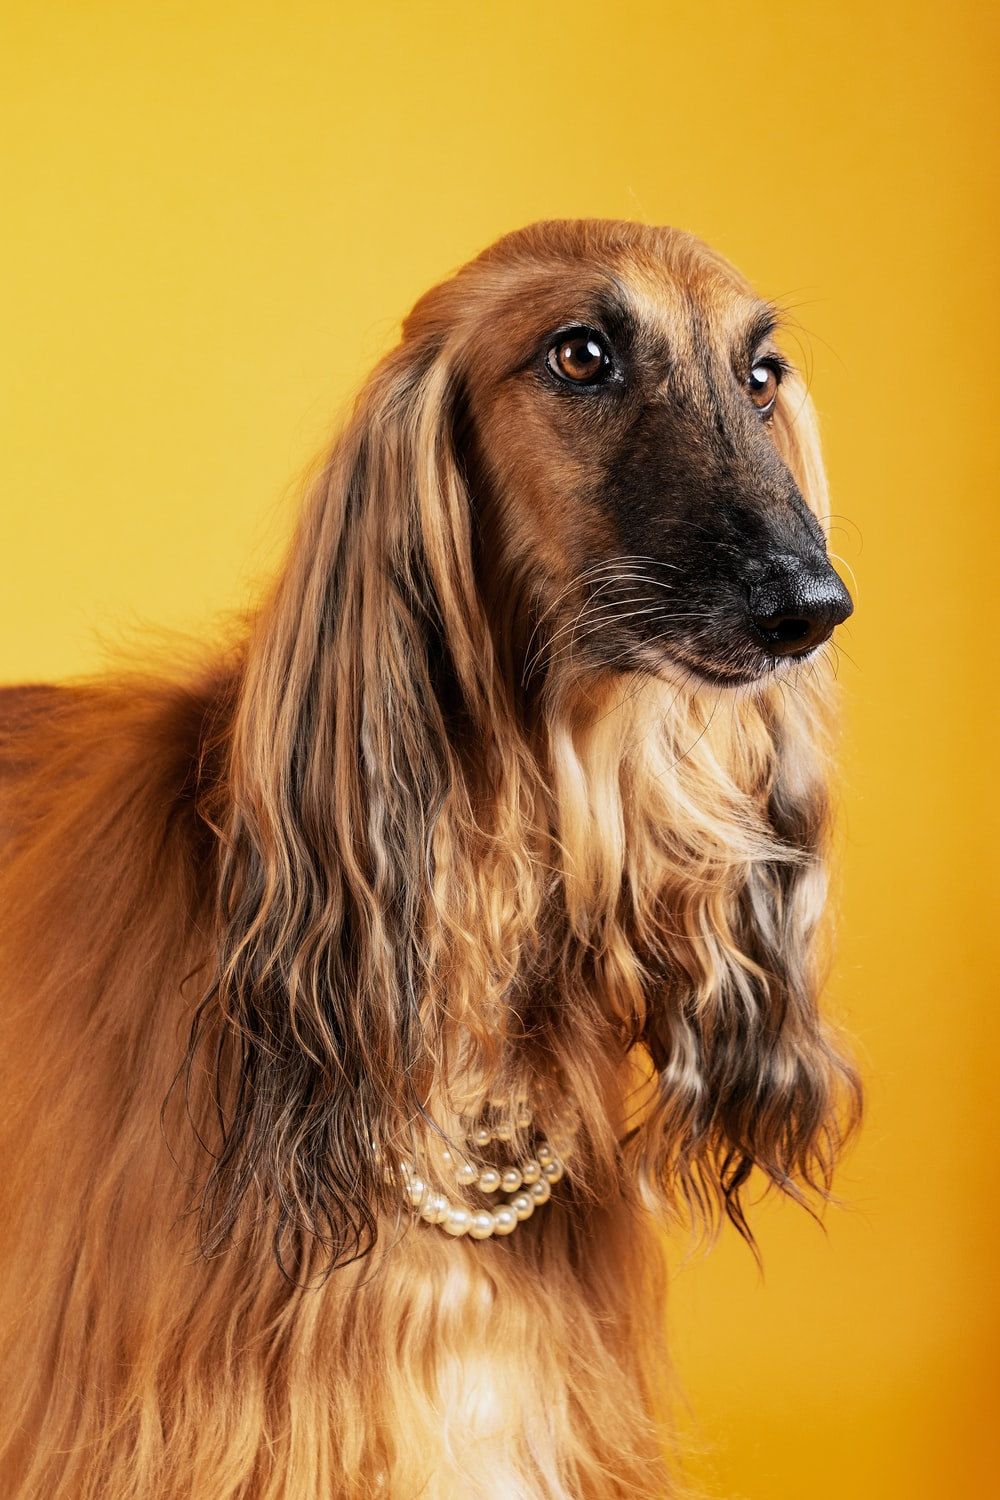 brown and black long haired dog